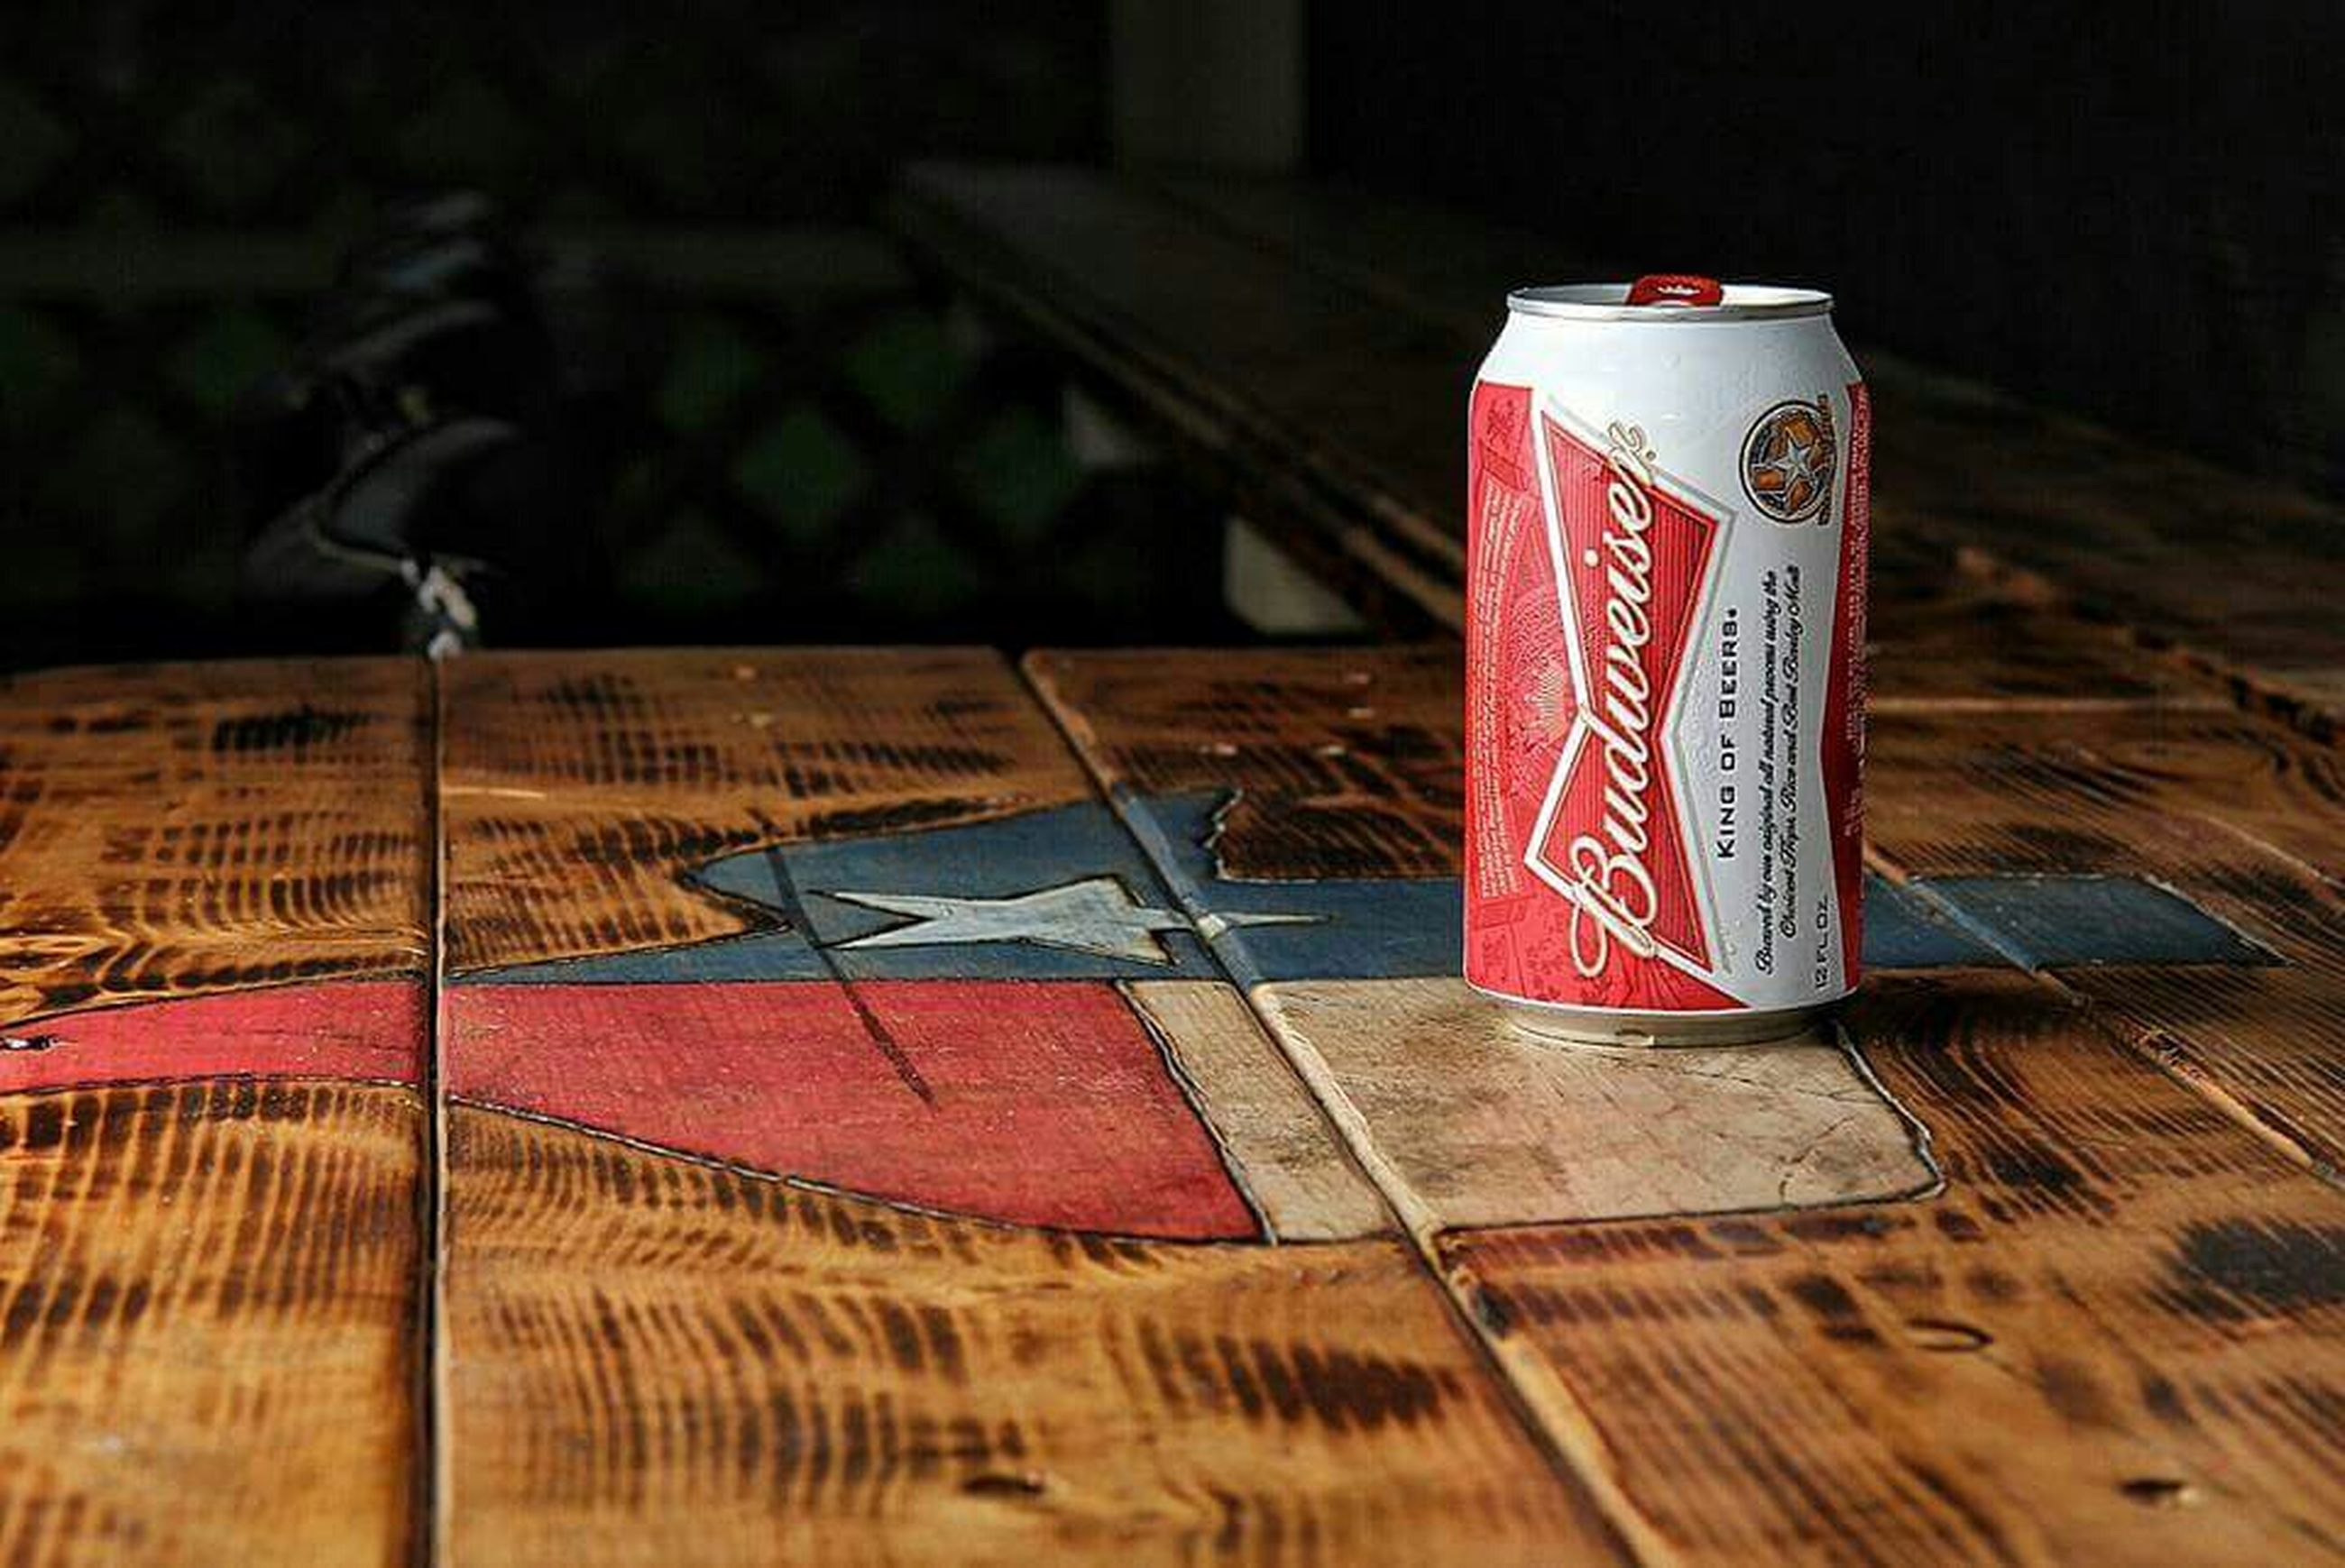 text, western script, red, communication, indoors, paper, table, flag, still life, patriotism, identity, wood - material, close-up, no people, information, non-western script, selective focus, book, heart shape, day